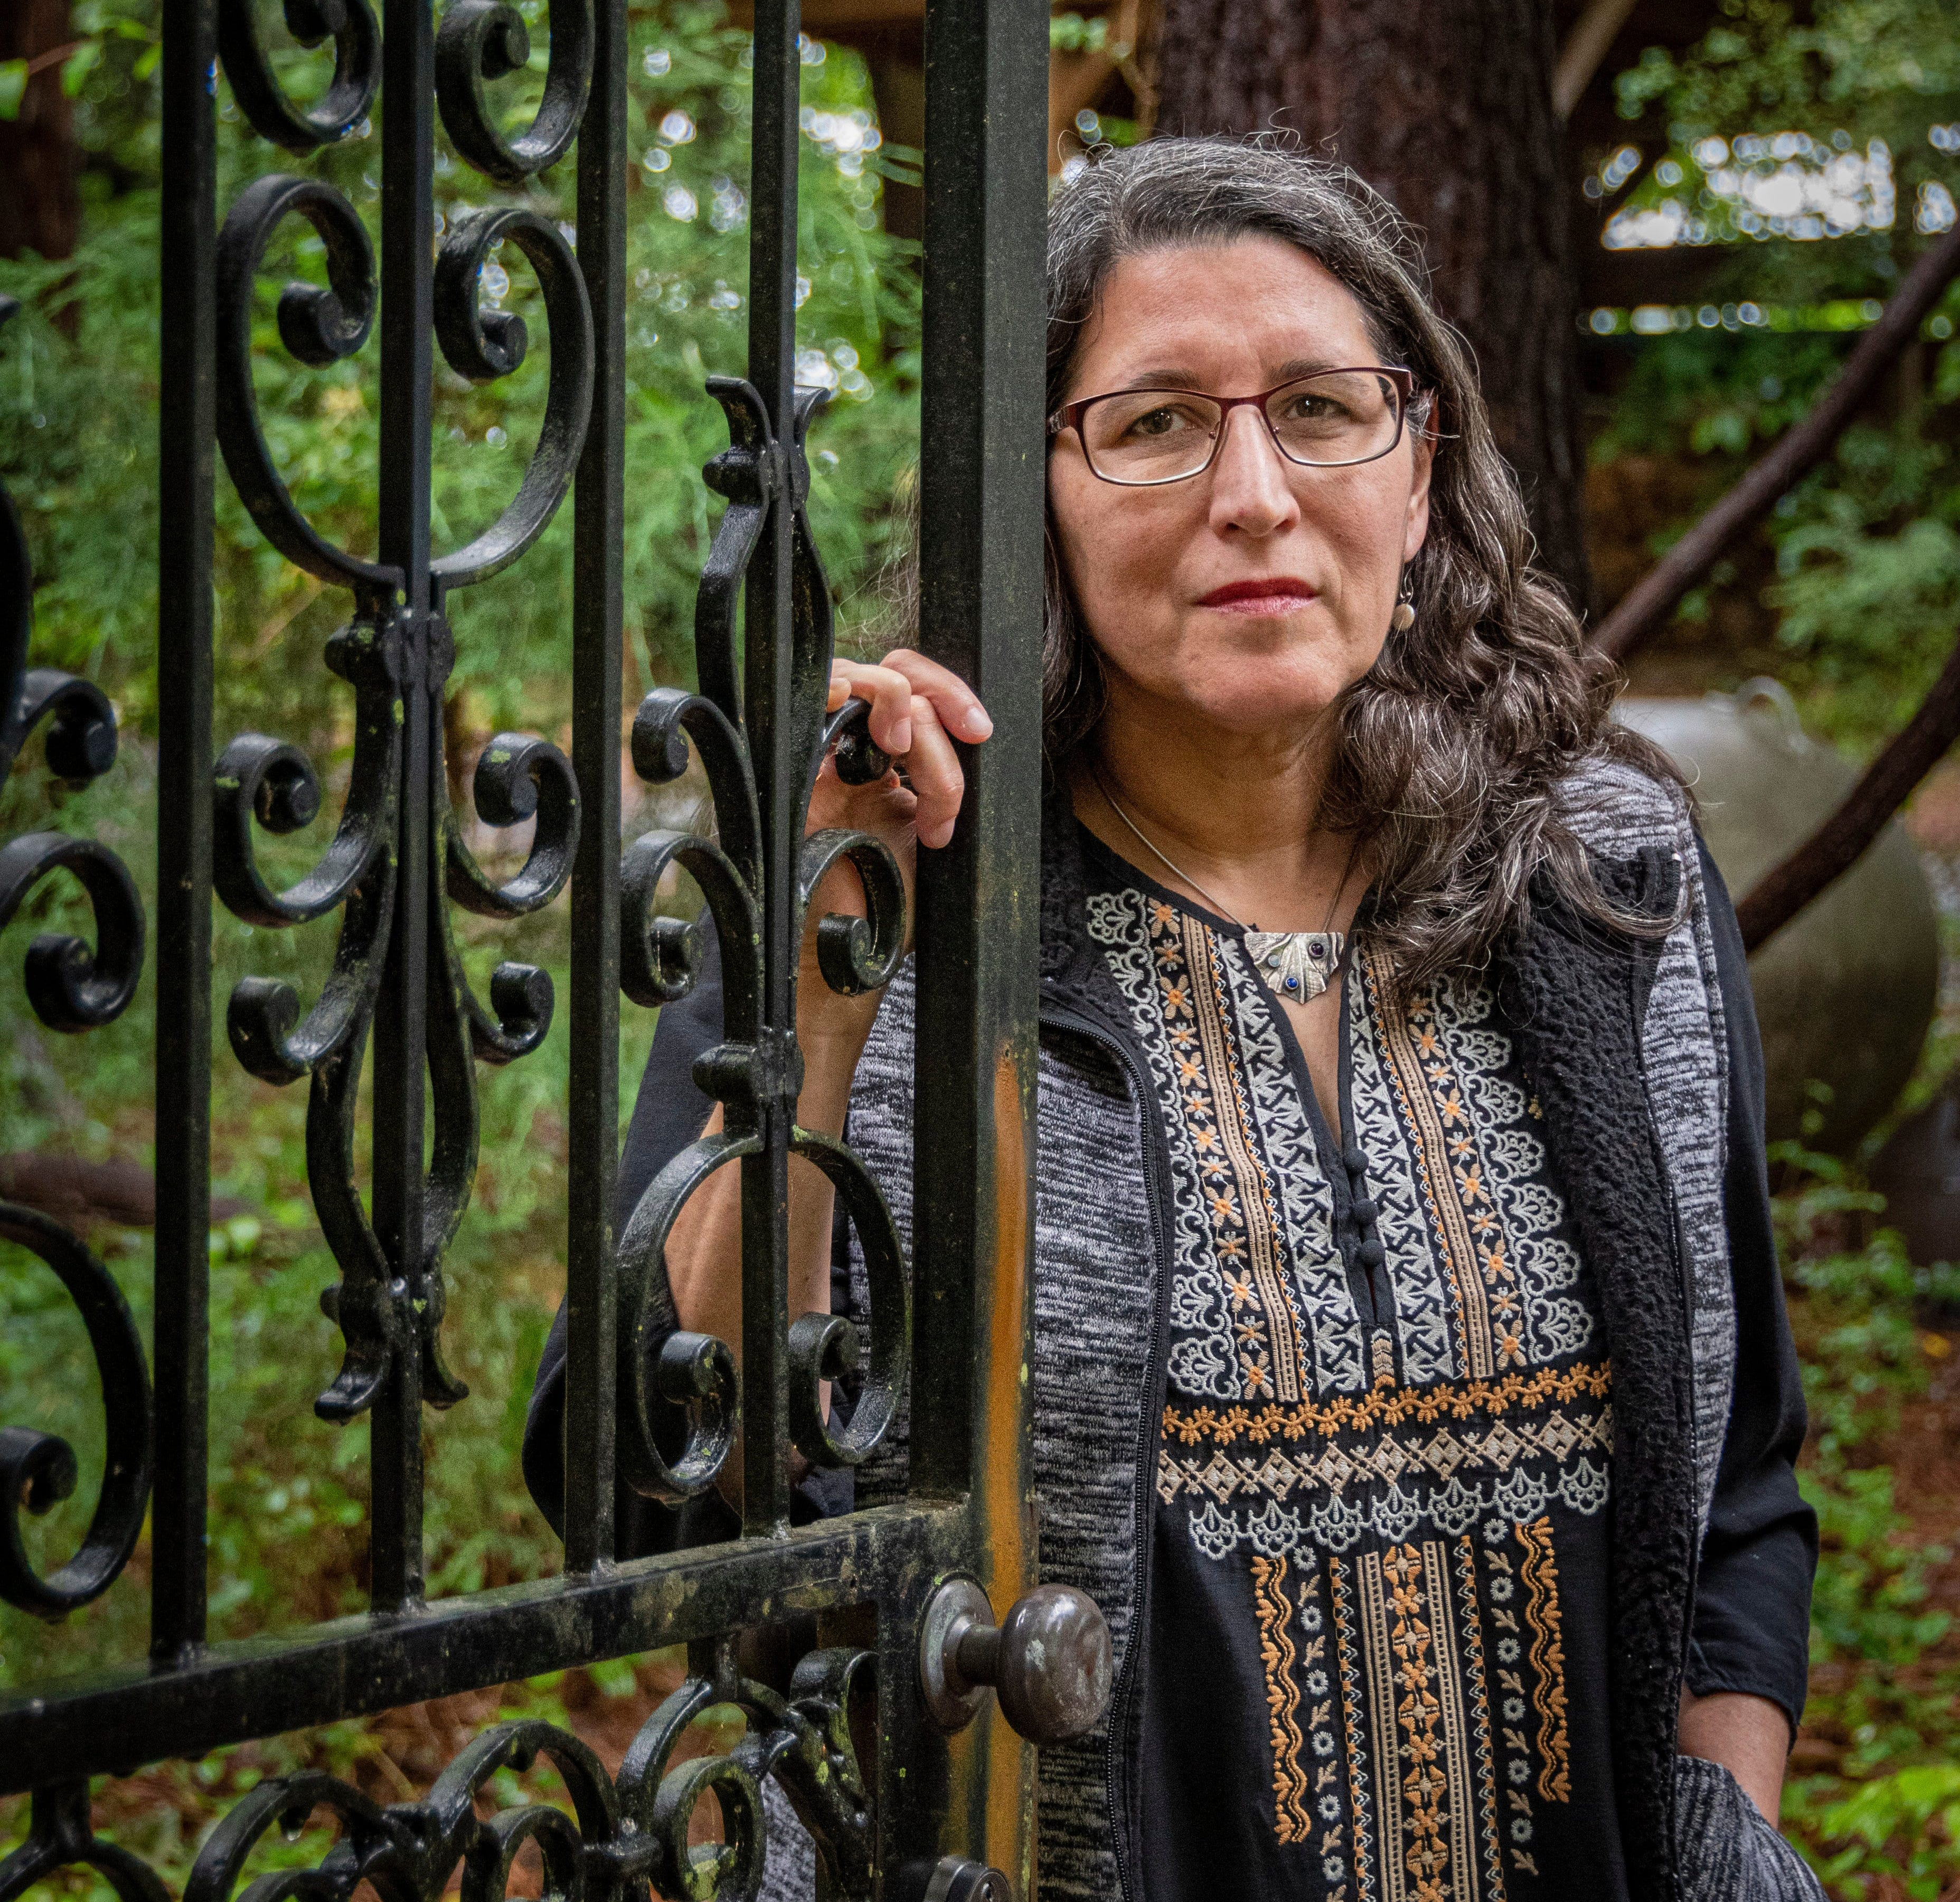 Ilana Dubester, Executive Director of The Hispanic Liasson, poses for a photo at her home in Pittsboro, NC.